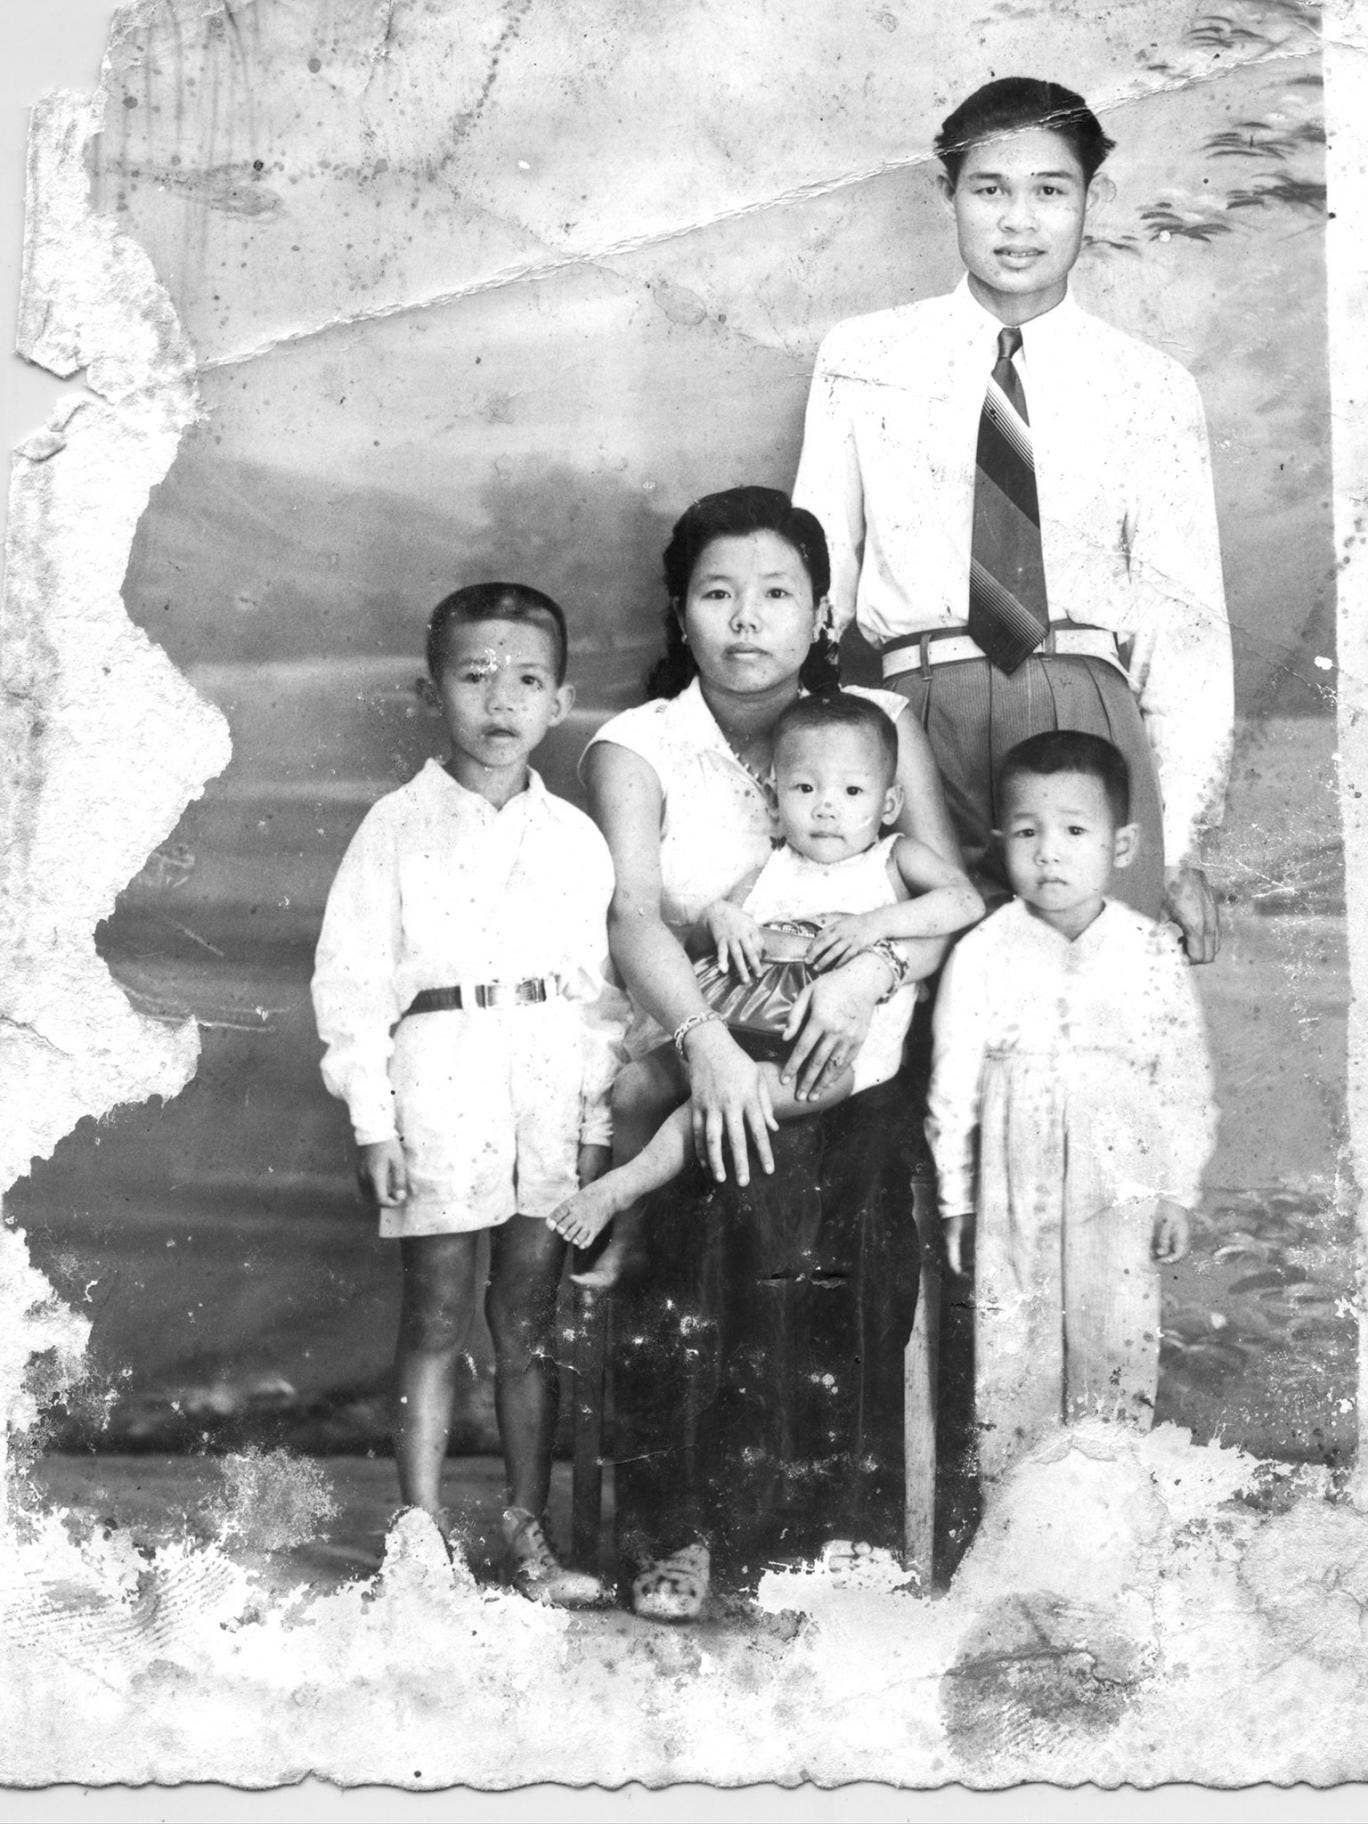 Poch Younly with wife Som Seng Eath and children in 1955